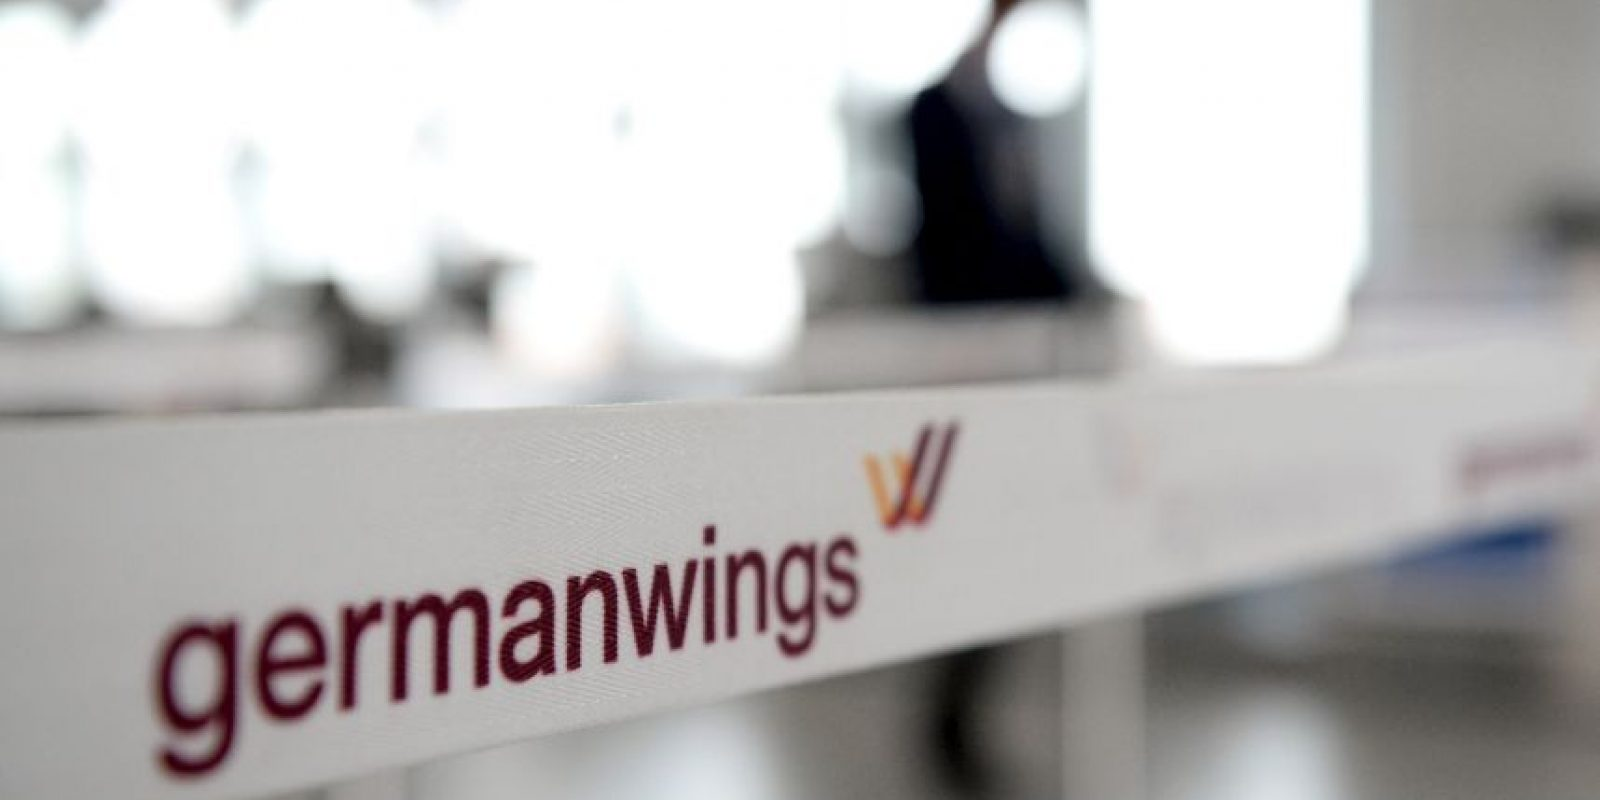 Lufthansa, empresa matriz de Germanwings, tuvo pérdidas en la bolsa después del accidente. Foto: Getty Images